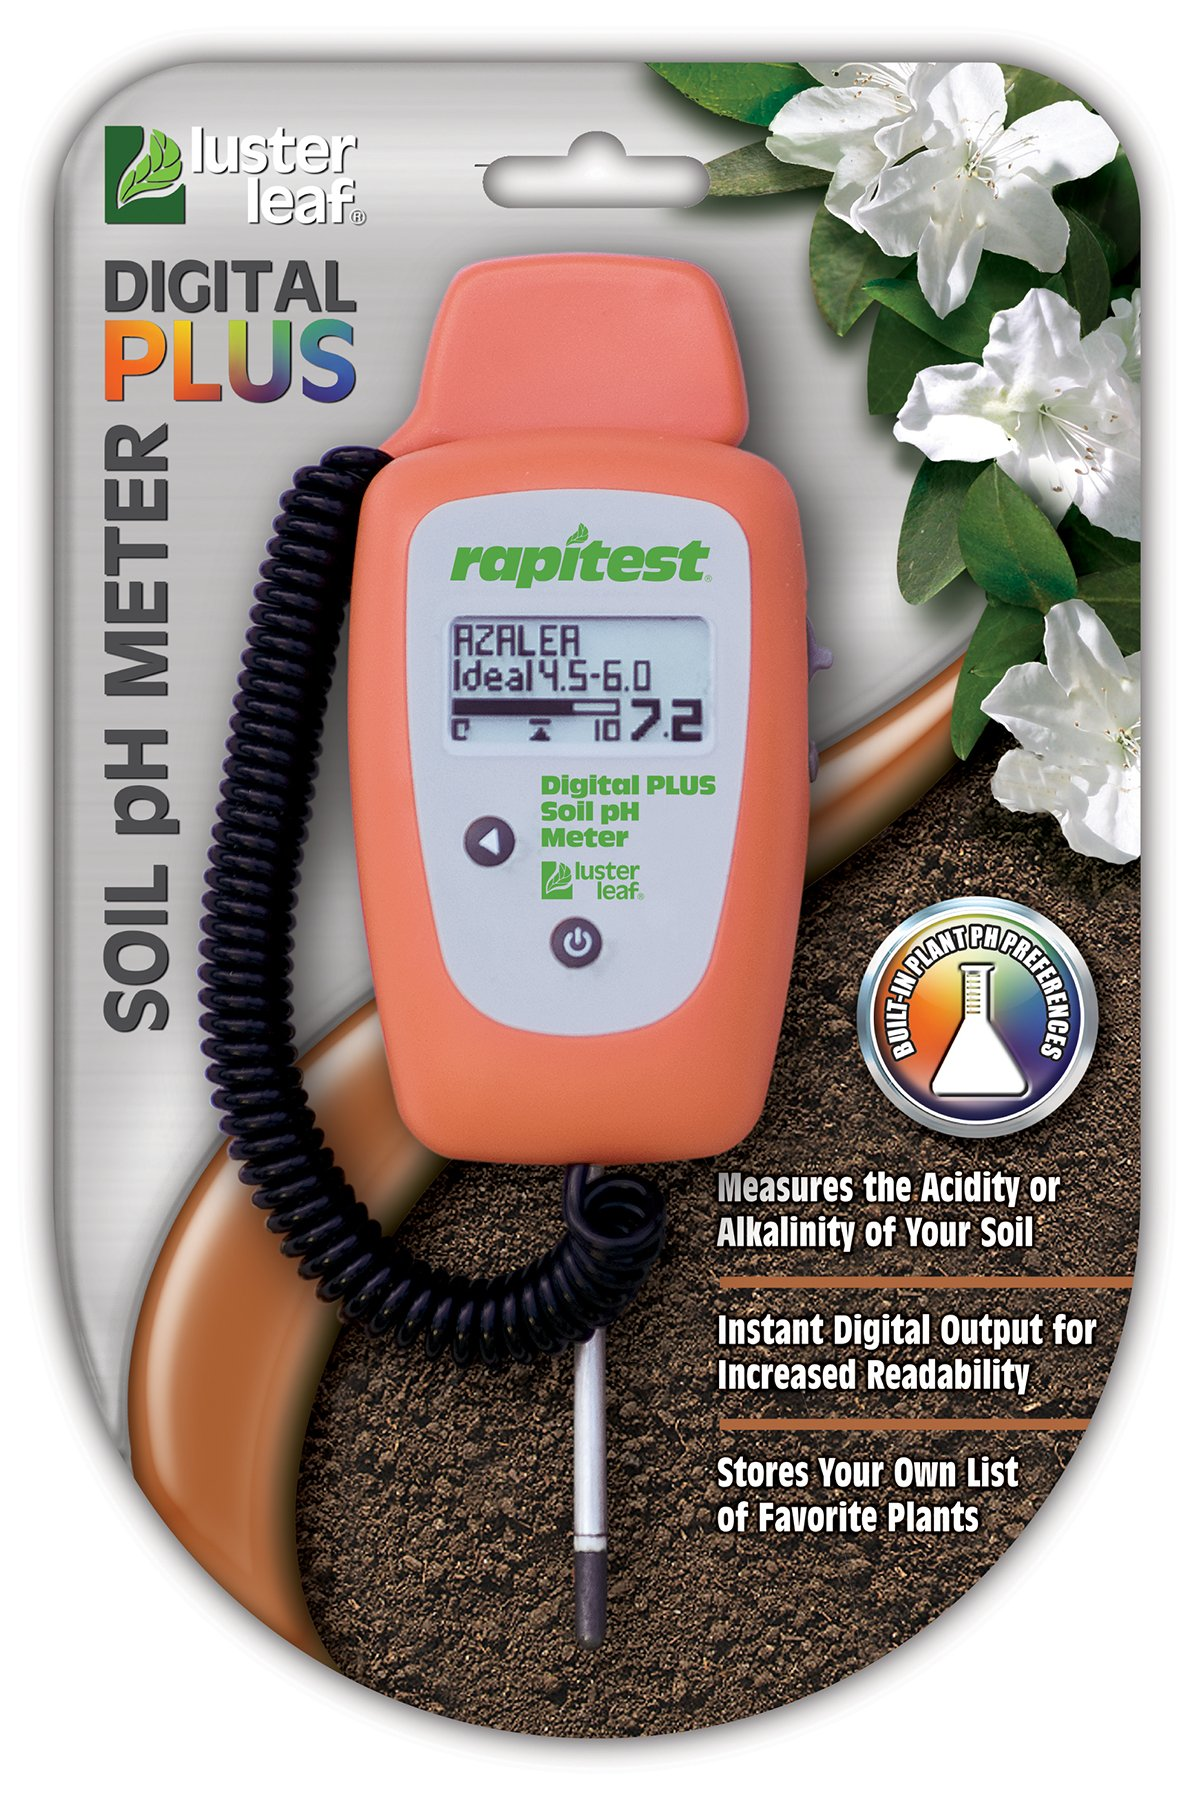 Luster Leaf 1847 Rapitest Digital Plus Soil pH Meter